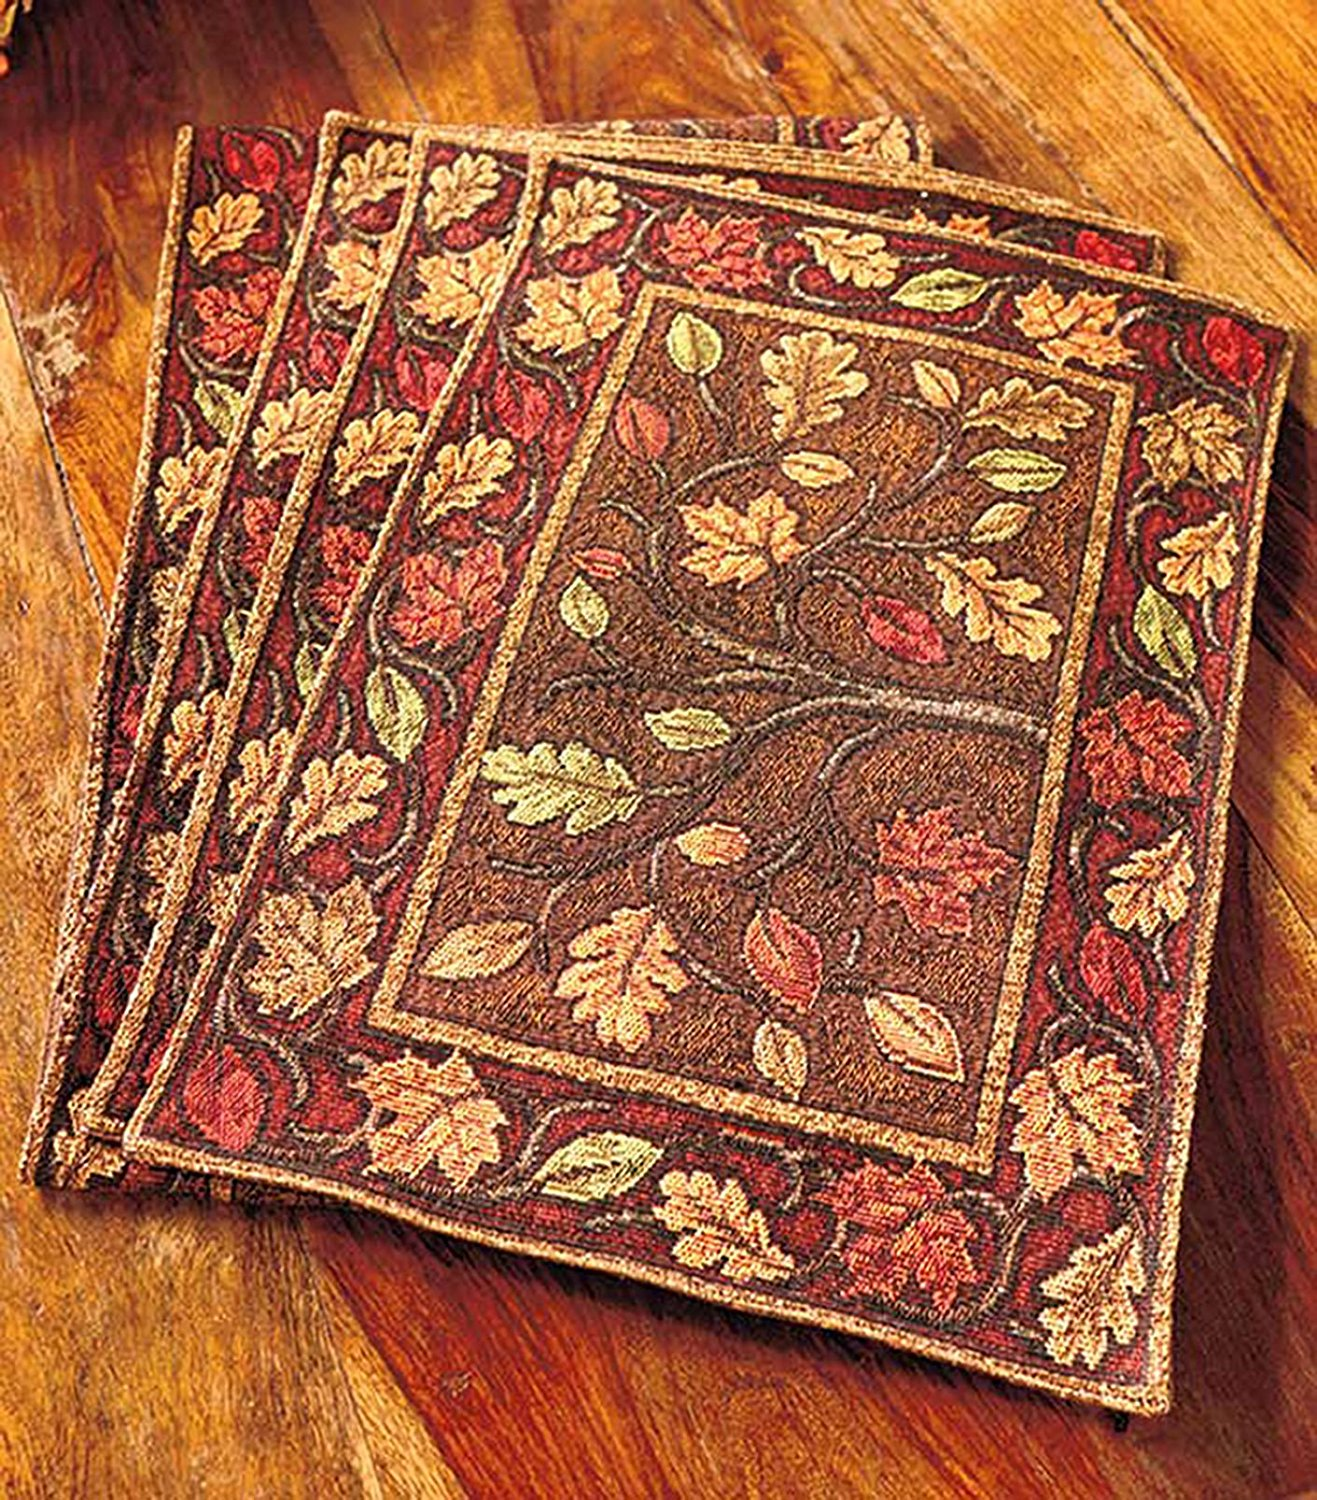 Harvest Leaves Tapestry Placemats, Set Of 4, Dancing Leaves Design Accents  Your Table With Autumn Colors By ABC   Walmart.com